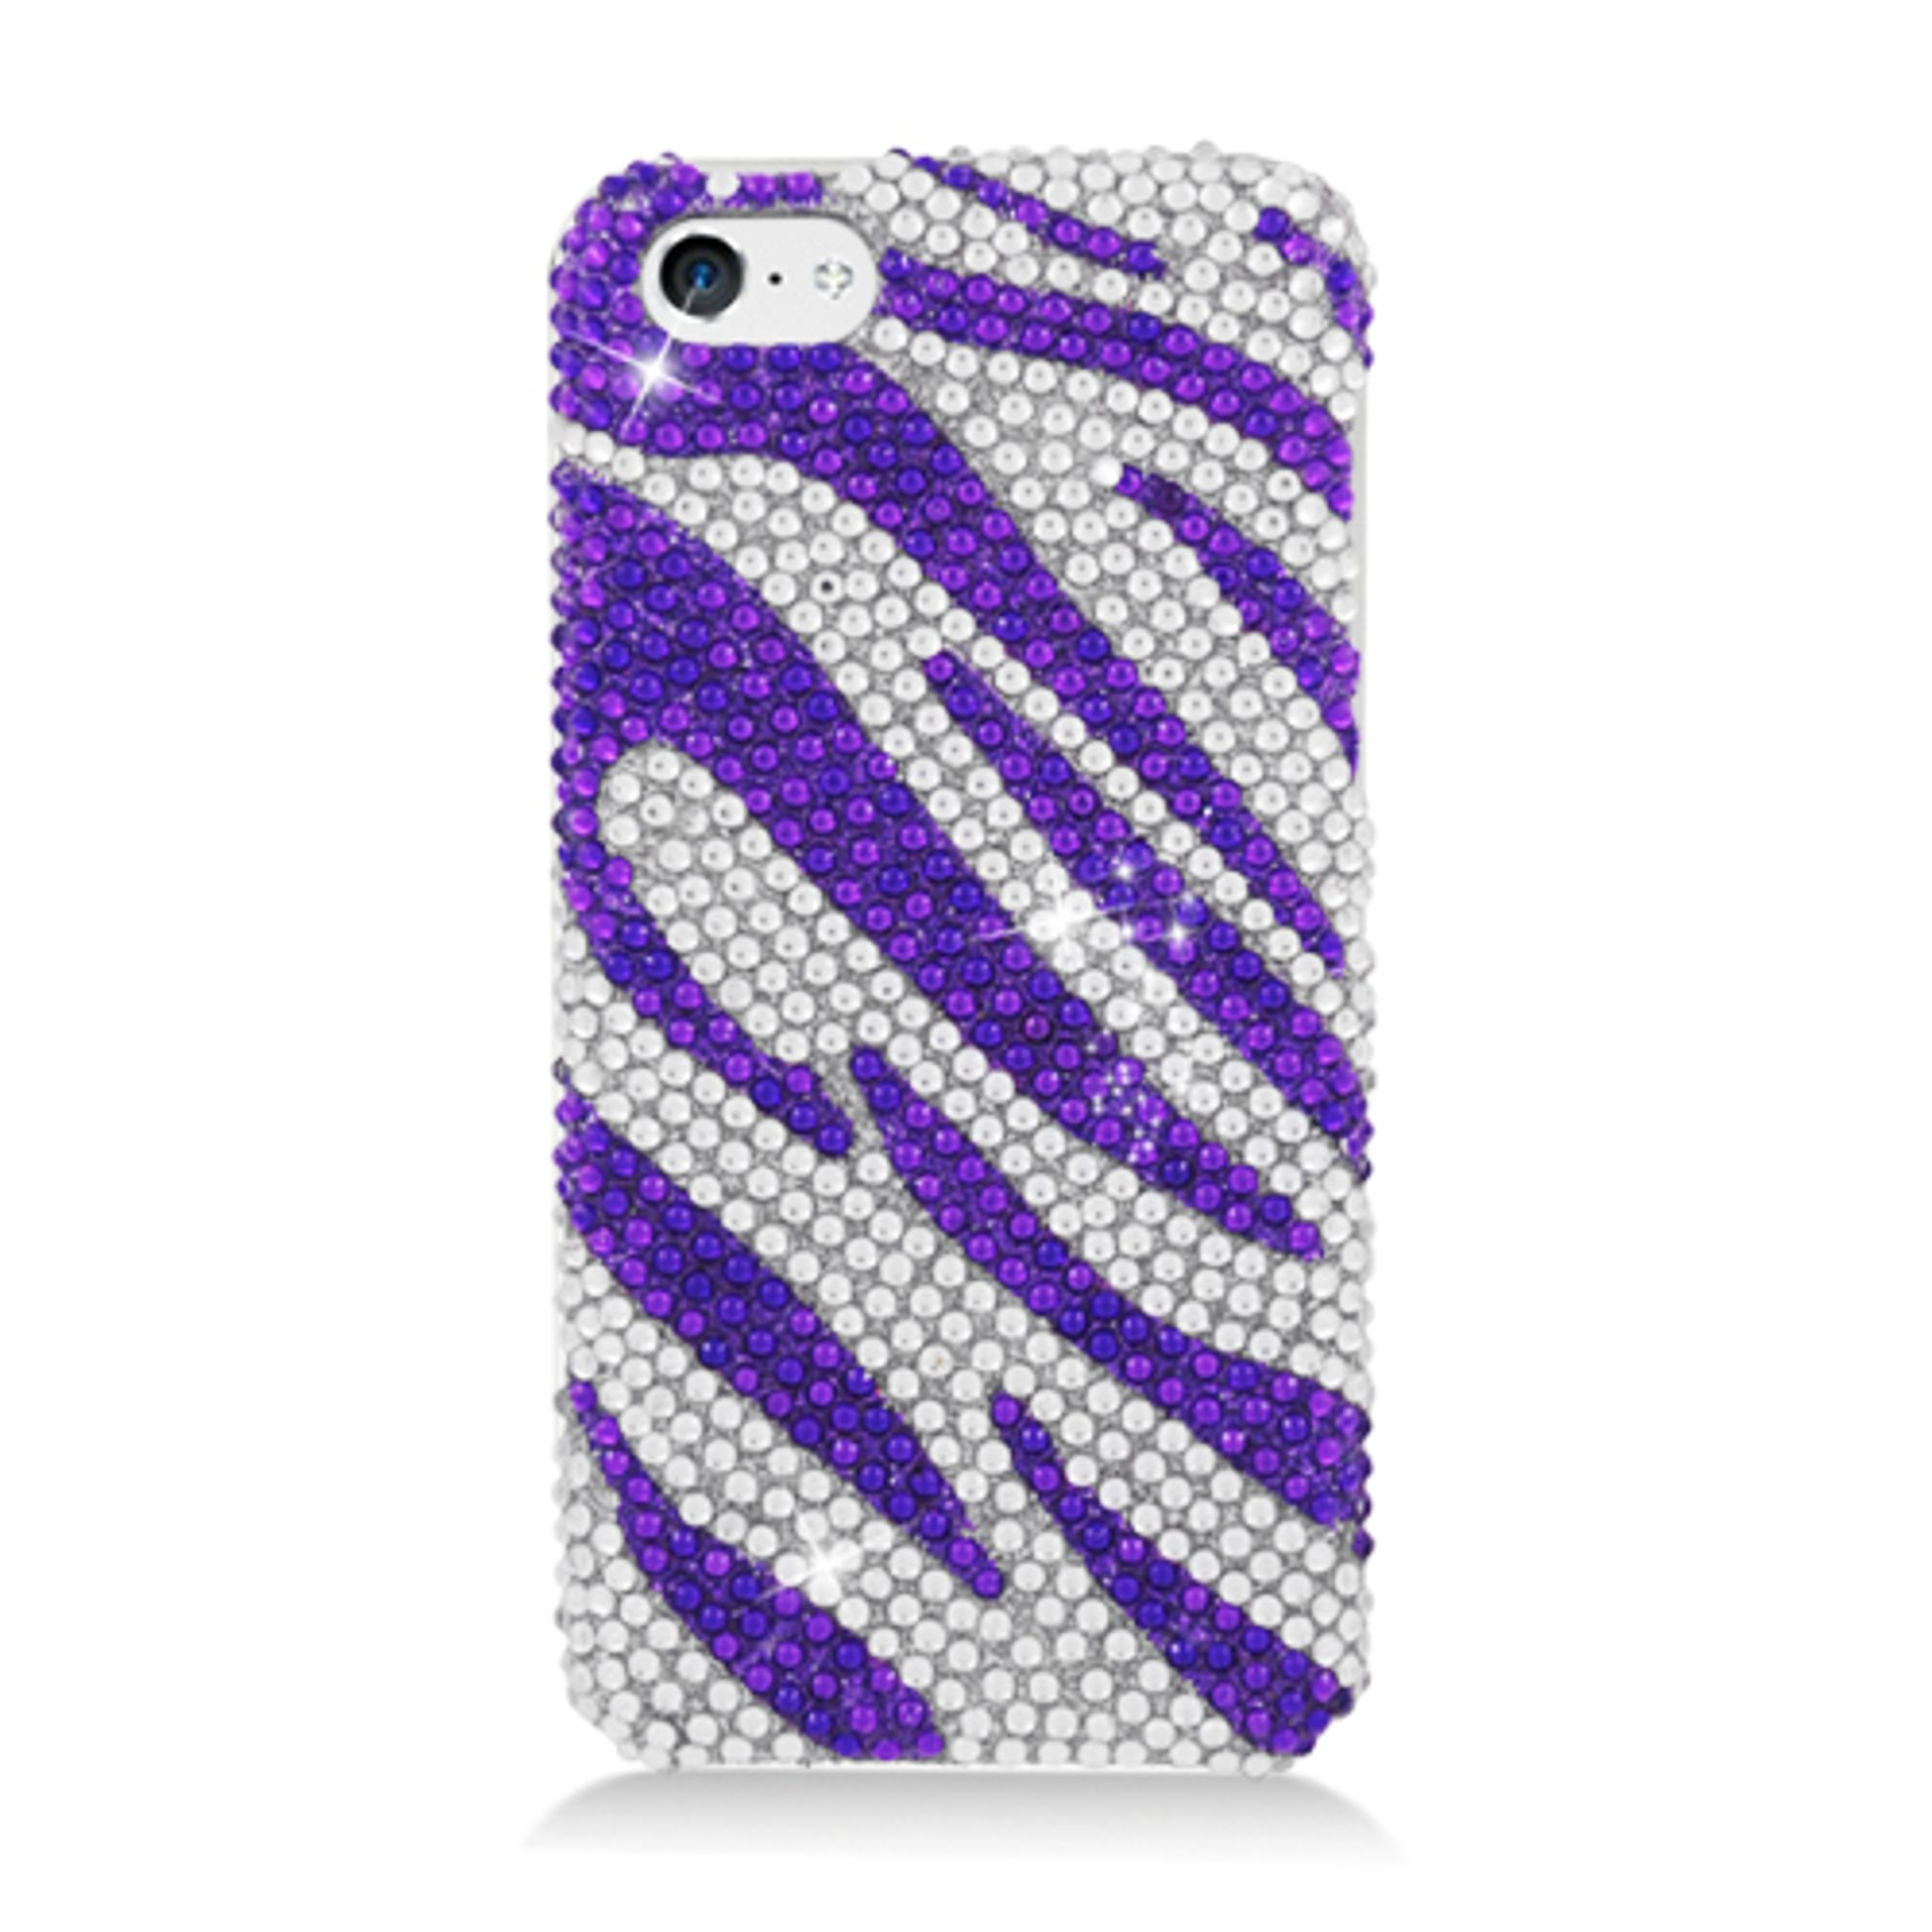 iPhone 5C Case, by Insten Zebra Rhinestone Diamond Bling Hard Snap-in Case Cover For Apple iPhone 5C